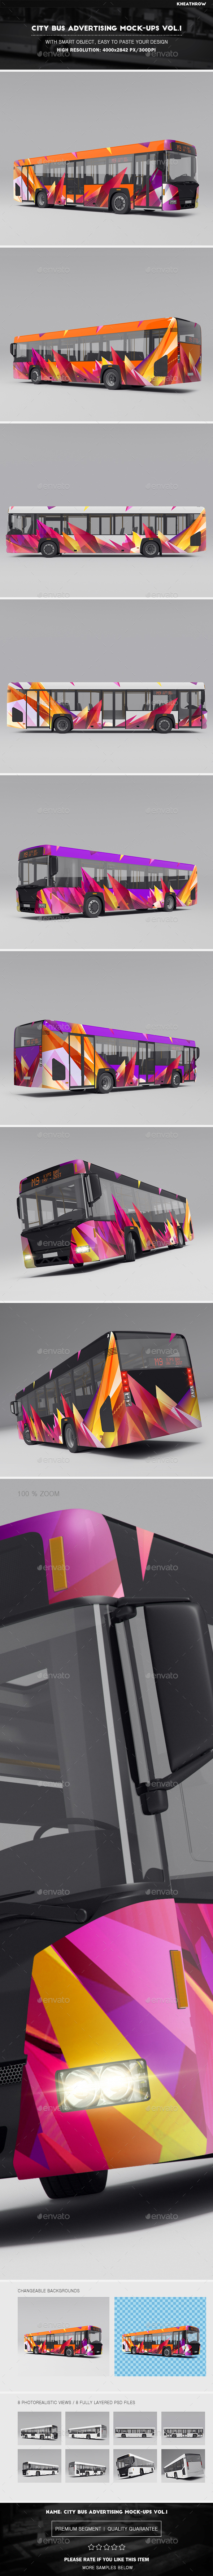 City Bus Advertising Mock-Ups Vol.1